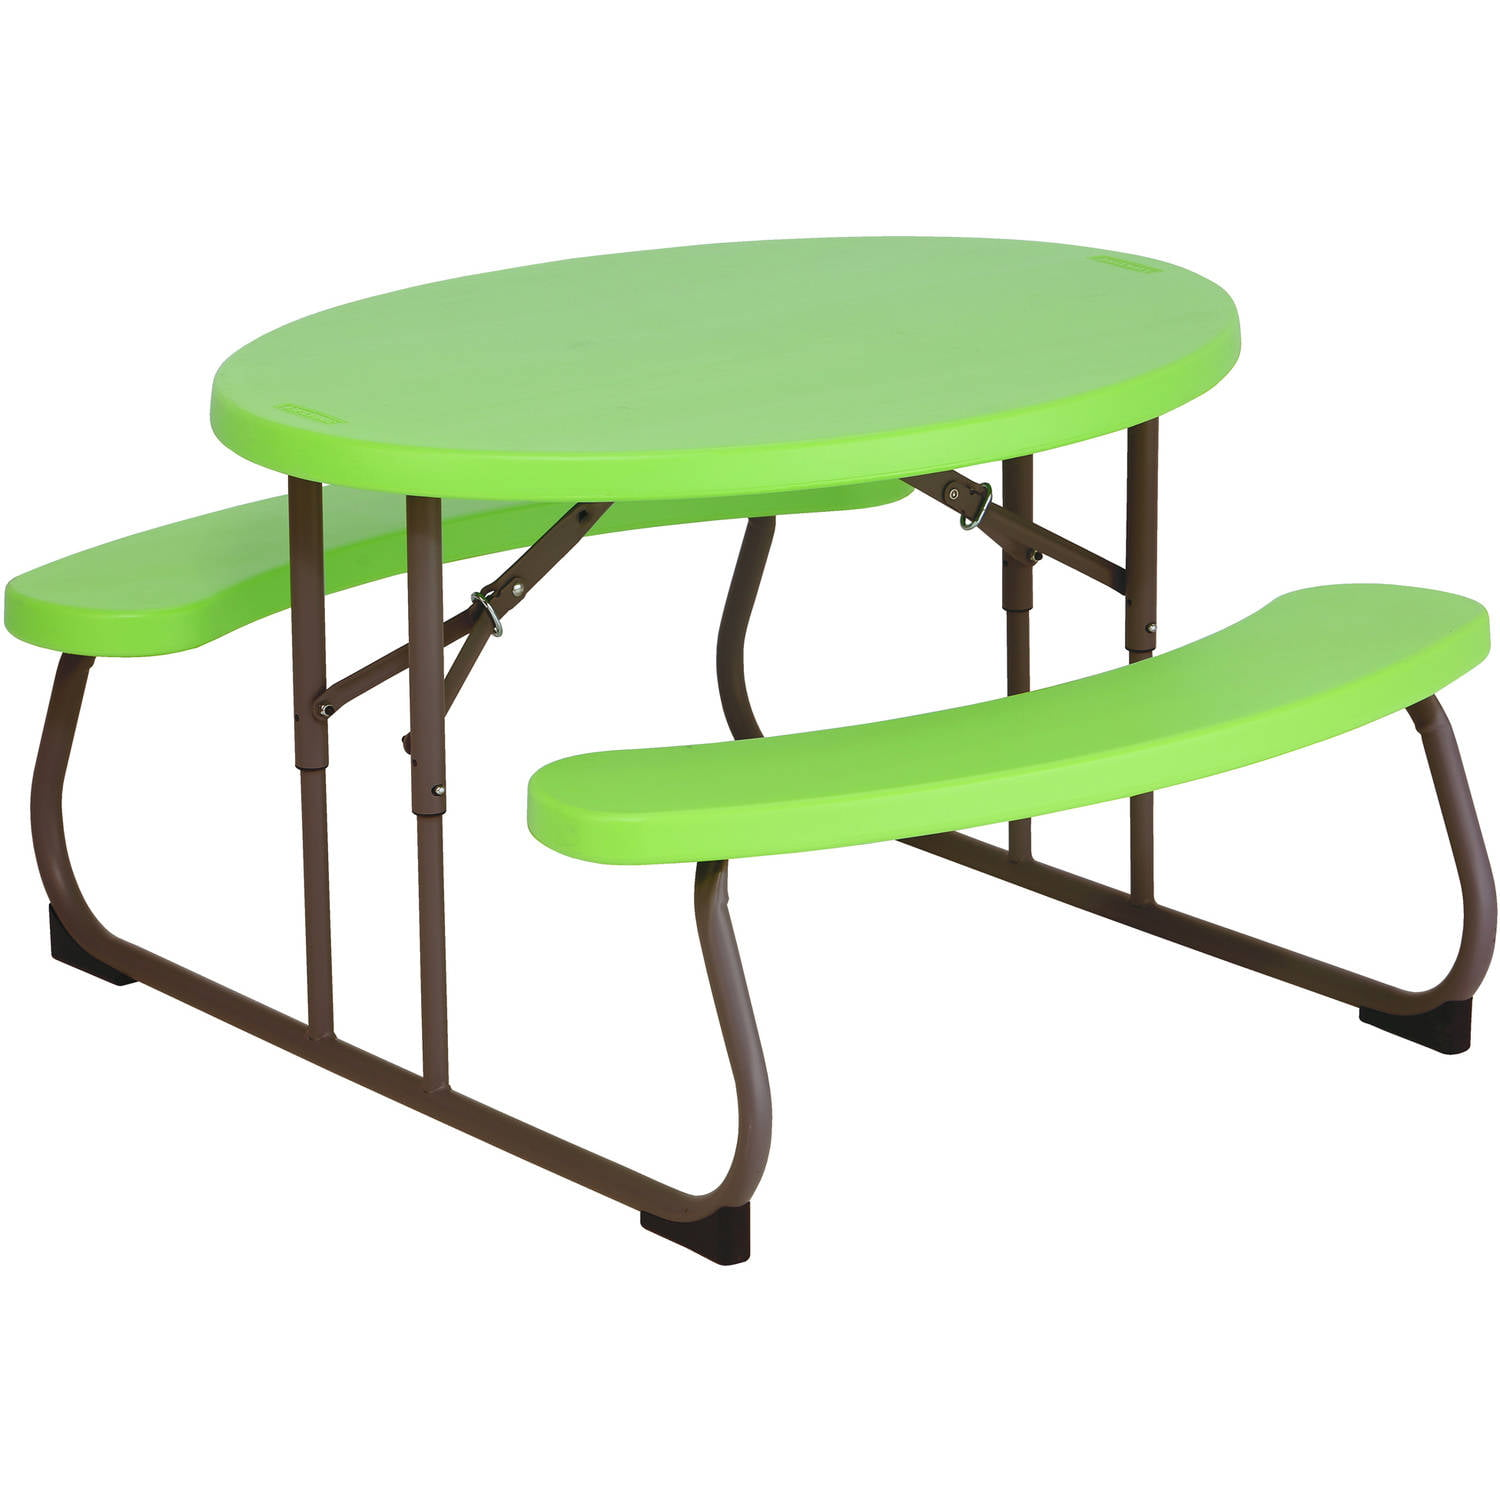 Lifetime Children's Oval Picnic Table, Lime Green by Lifetime Products